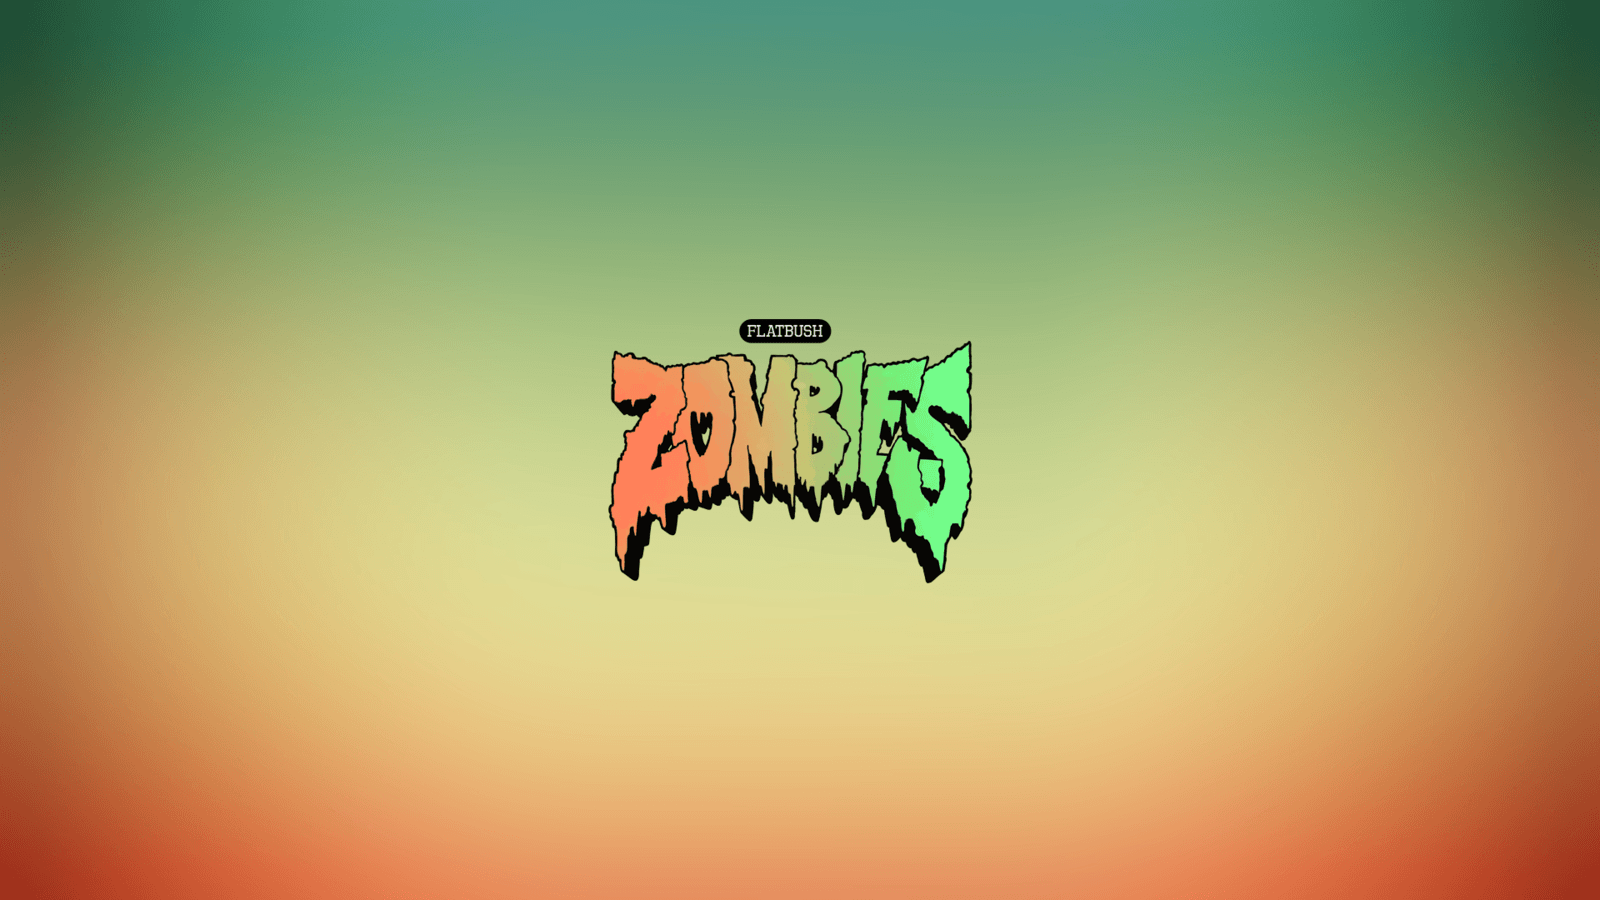 1600x900 Flatbush Zombies Wallpapers